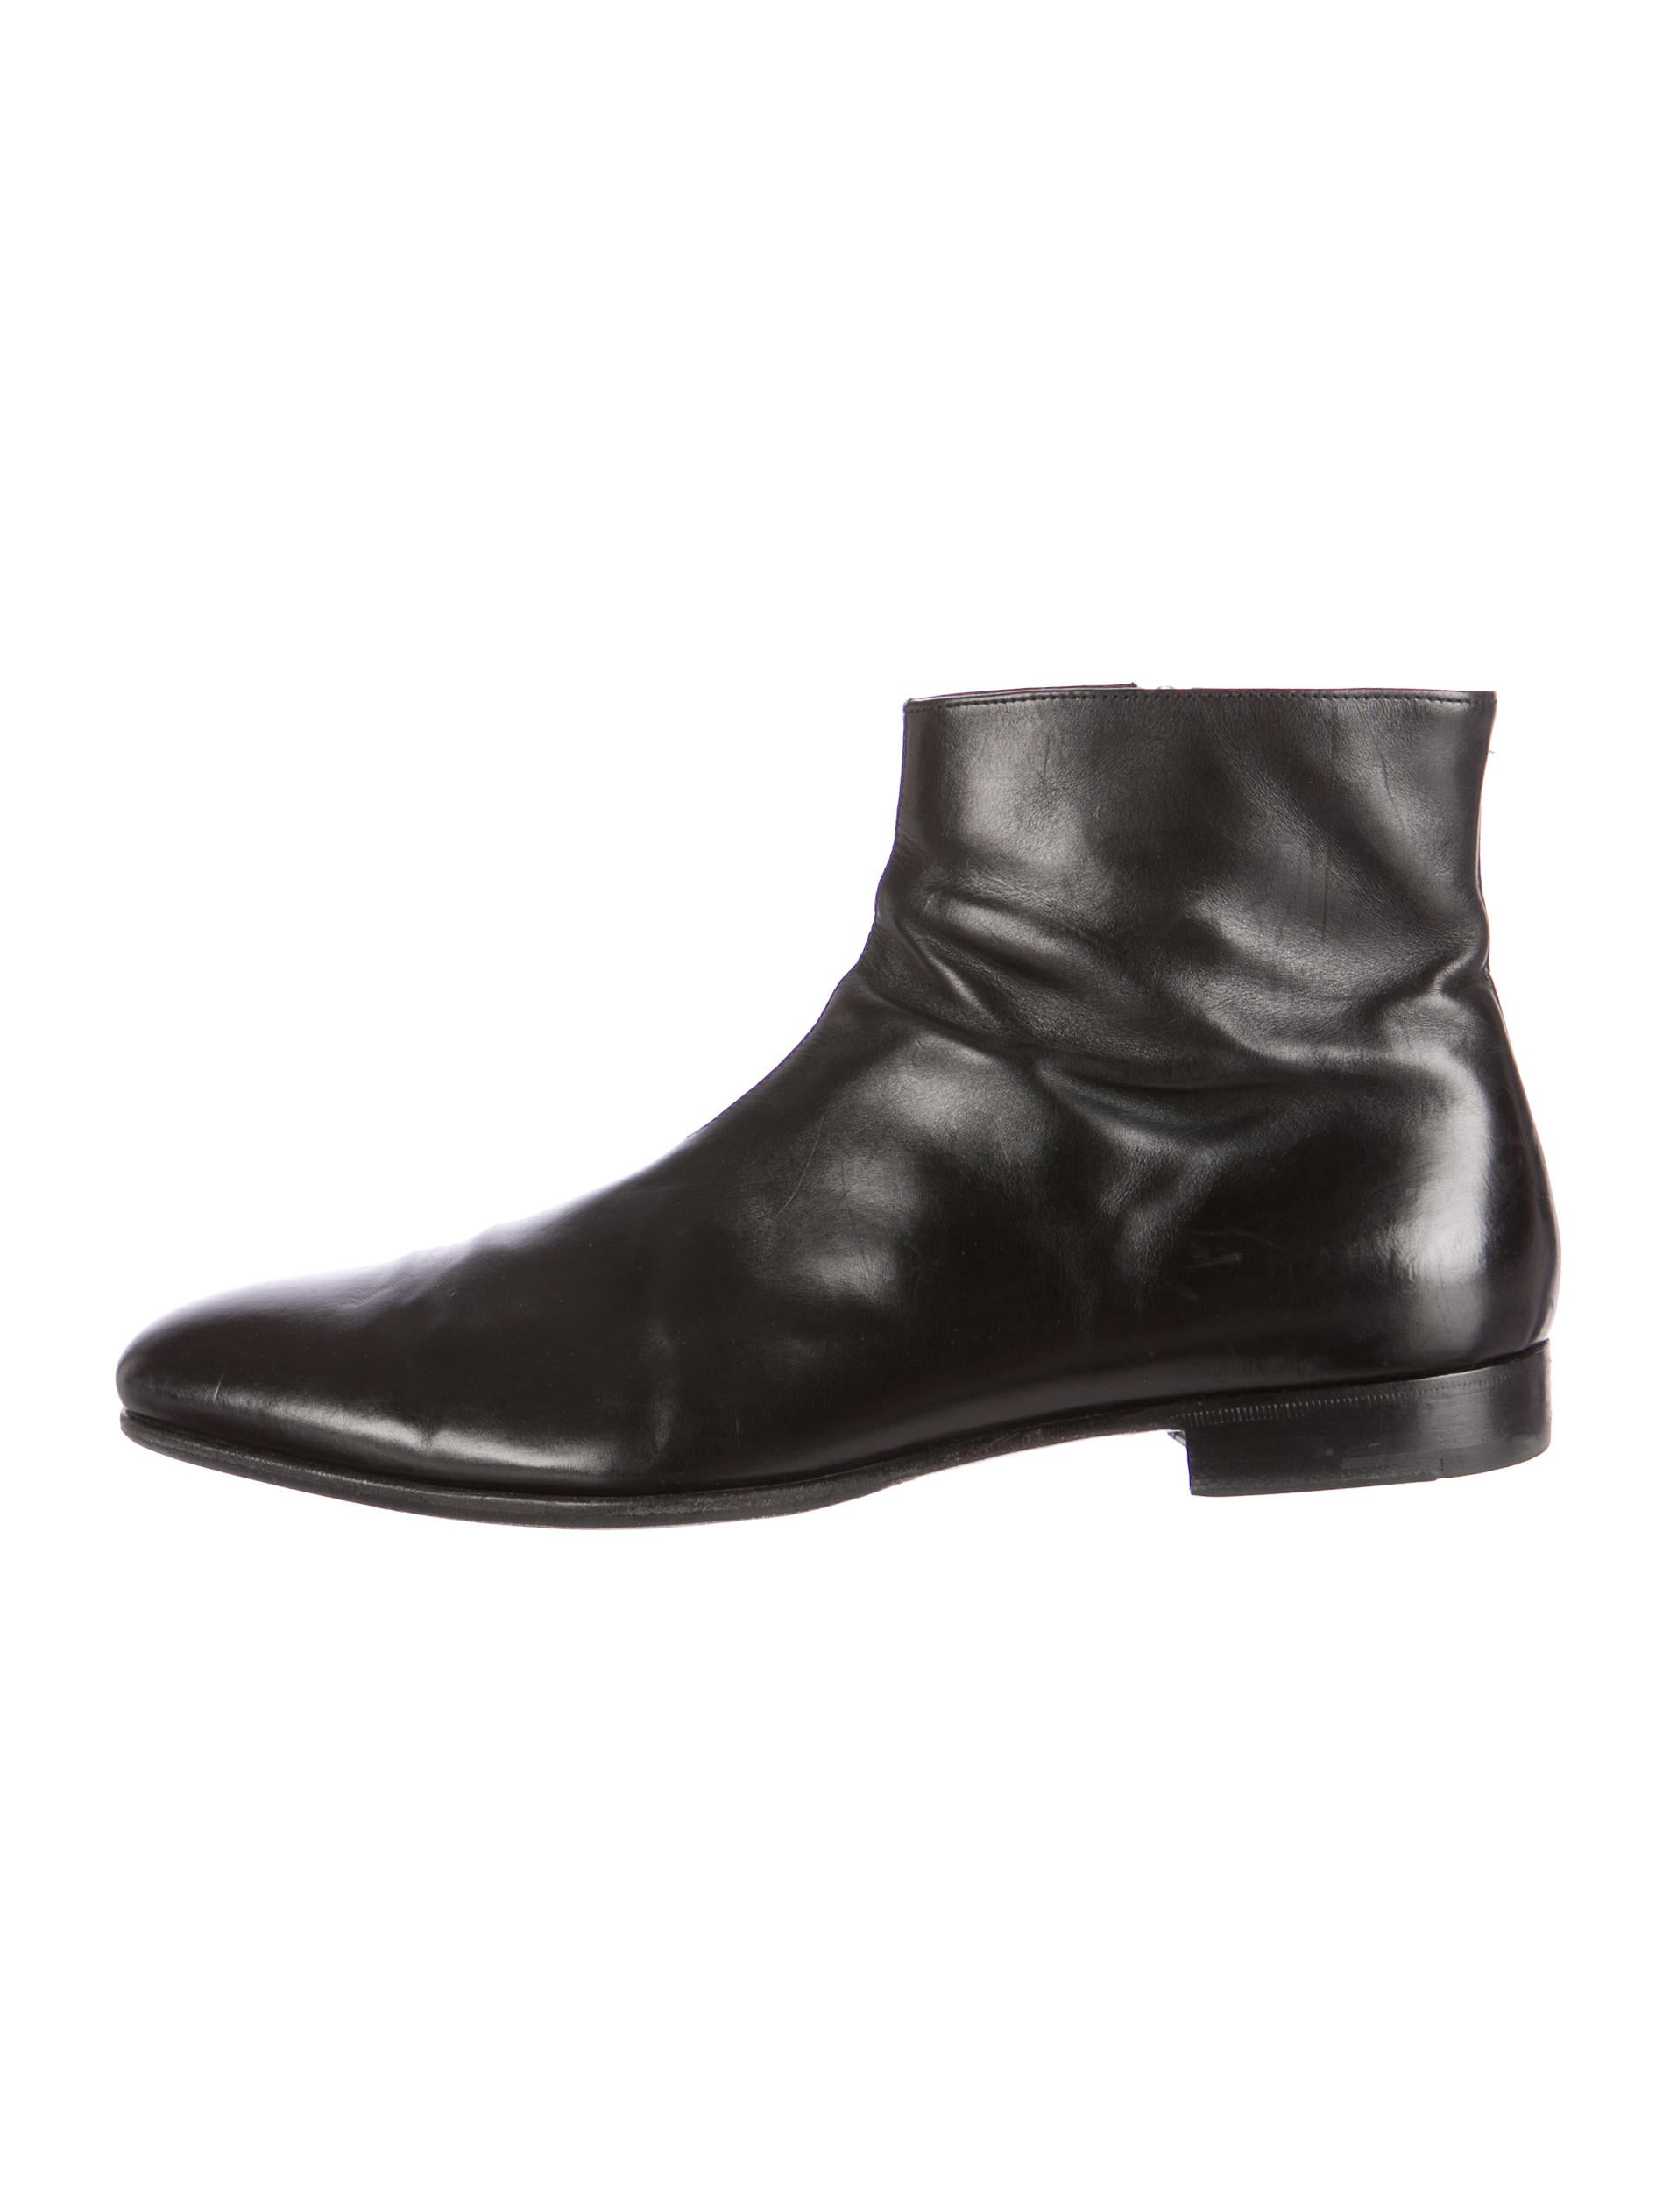 prada leather ankle boots shoes pra82983 the realreal